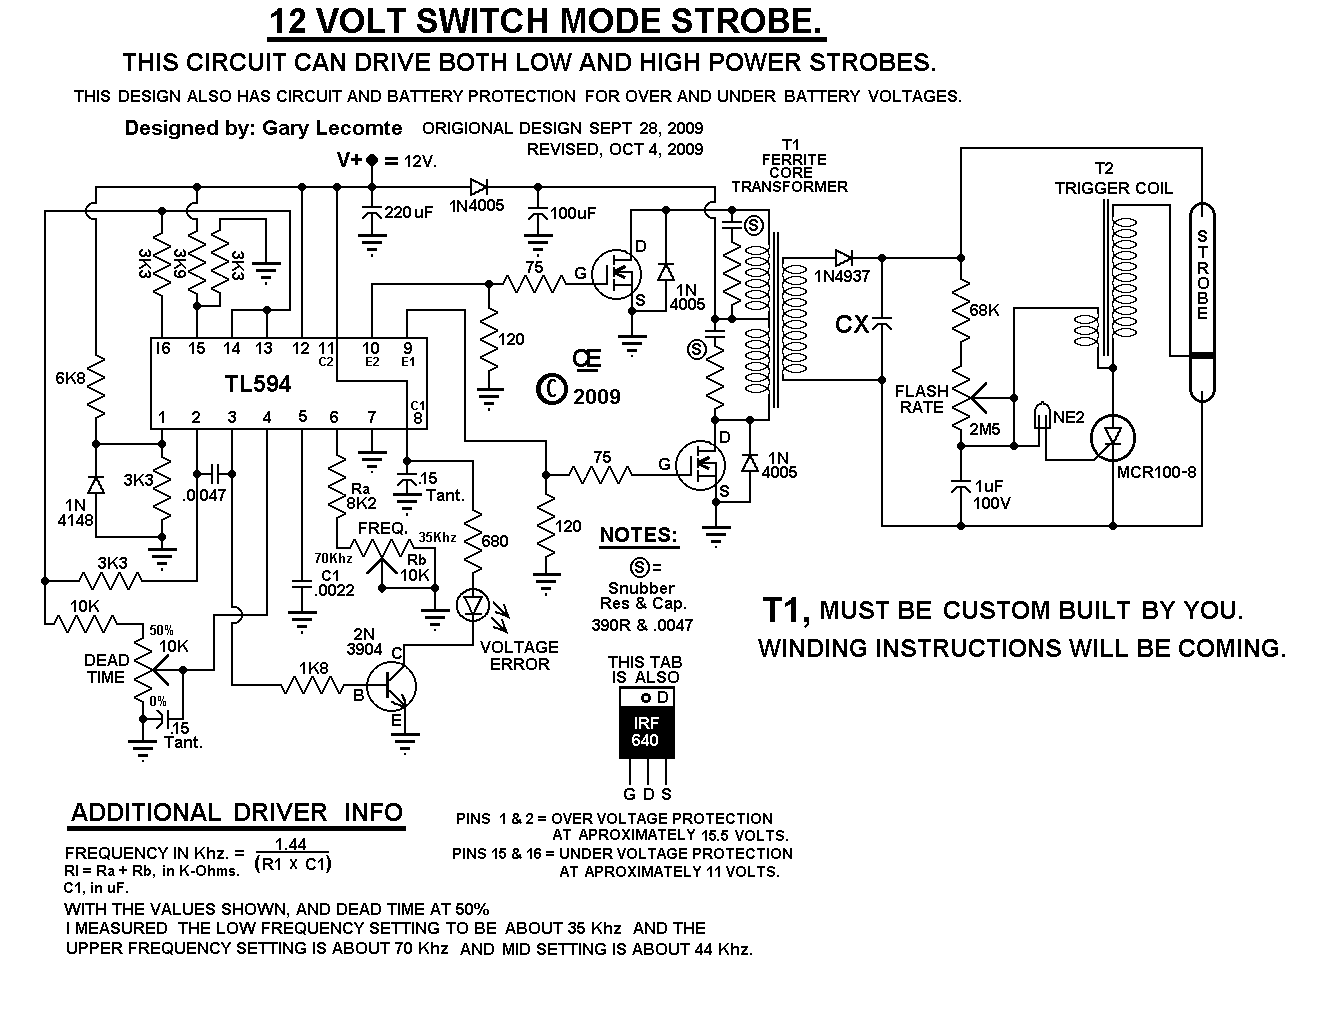 Strobe 2 sch a switching supply, 12 volt strobe strobe power supply wiring diagram at n-0.co